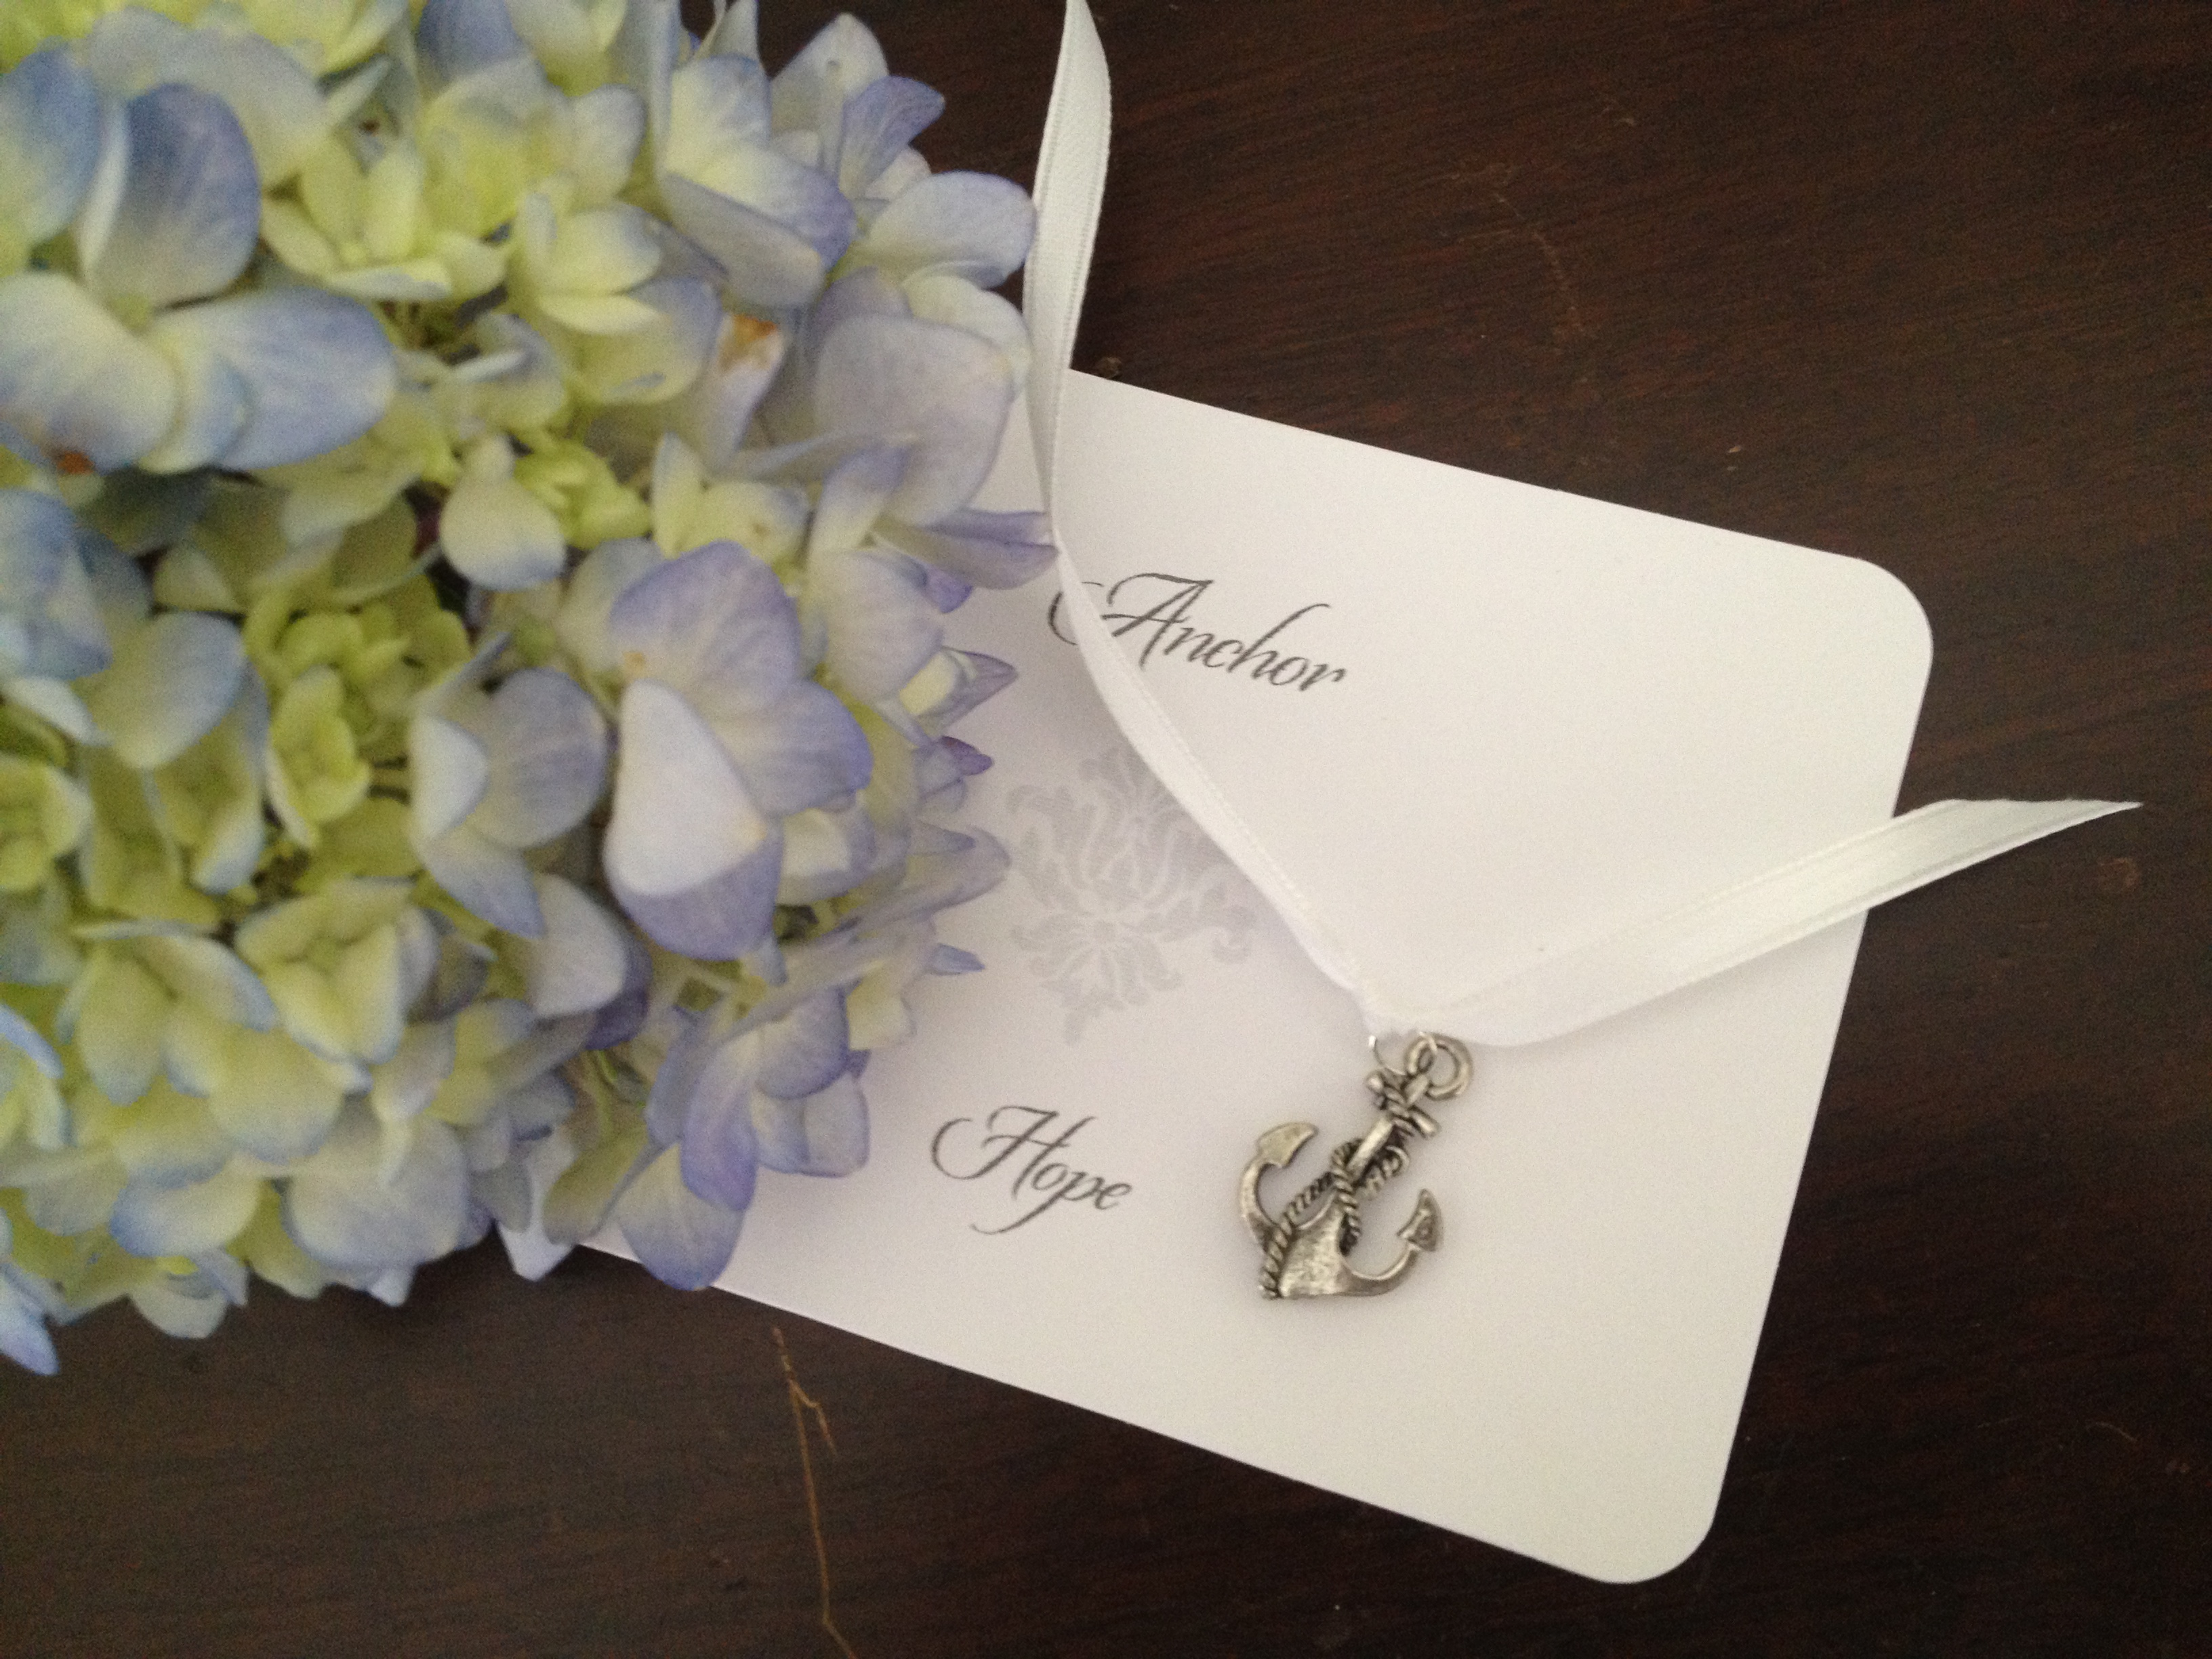 bride groom blushing bride wedding cake charms and cake pulls for bridesmaid luncheon. Black Bedroom Furniture Sets. Home Design Ideas